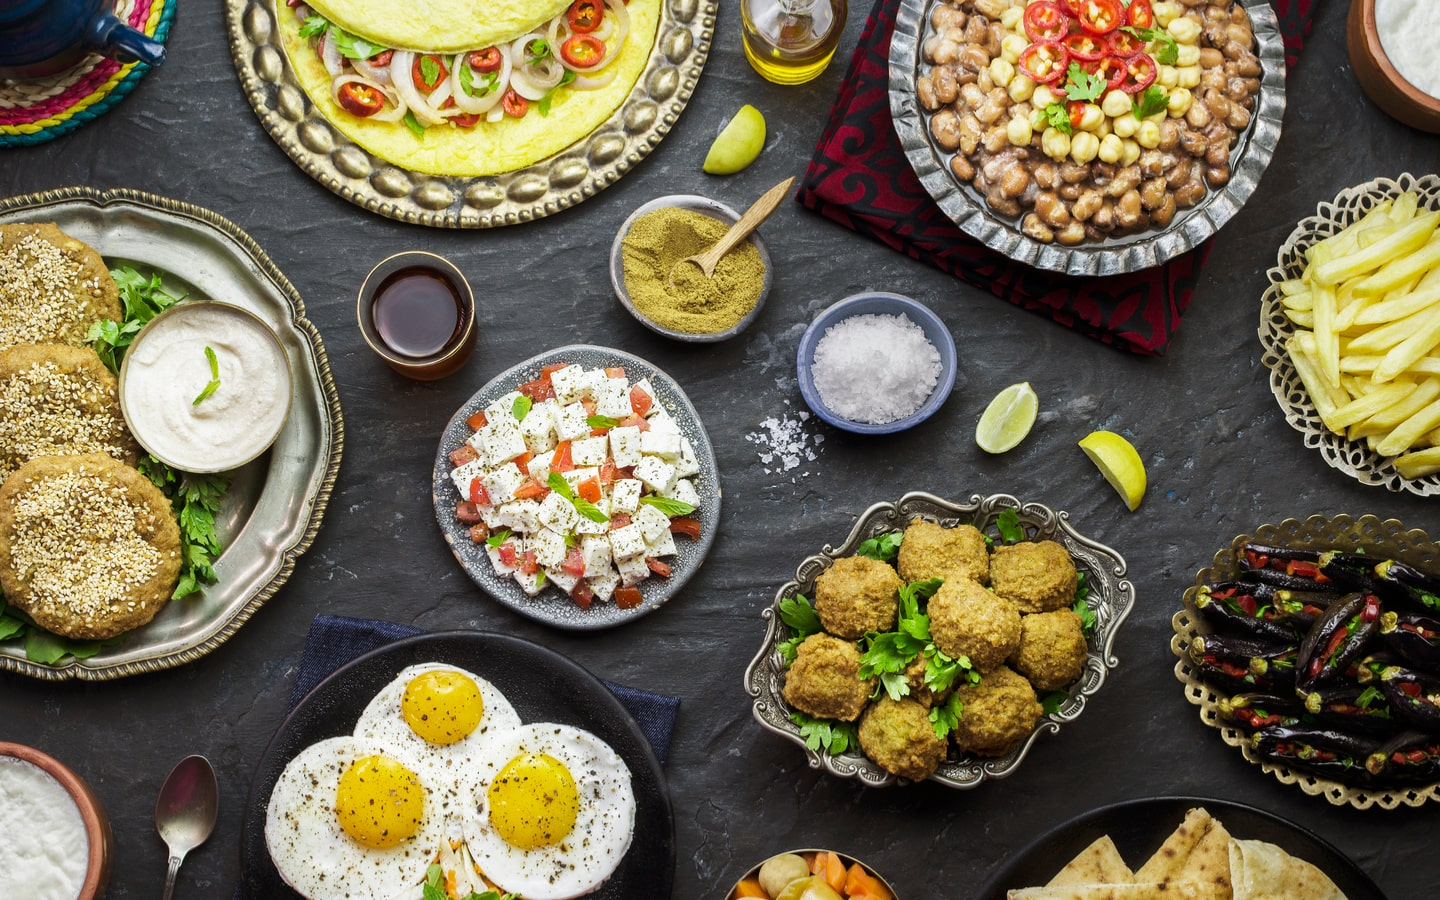 Arabic dishes on a table